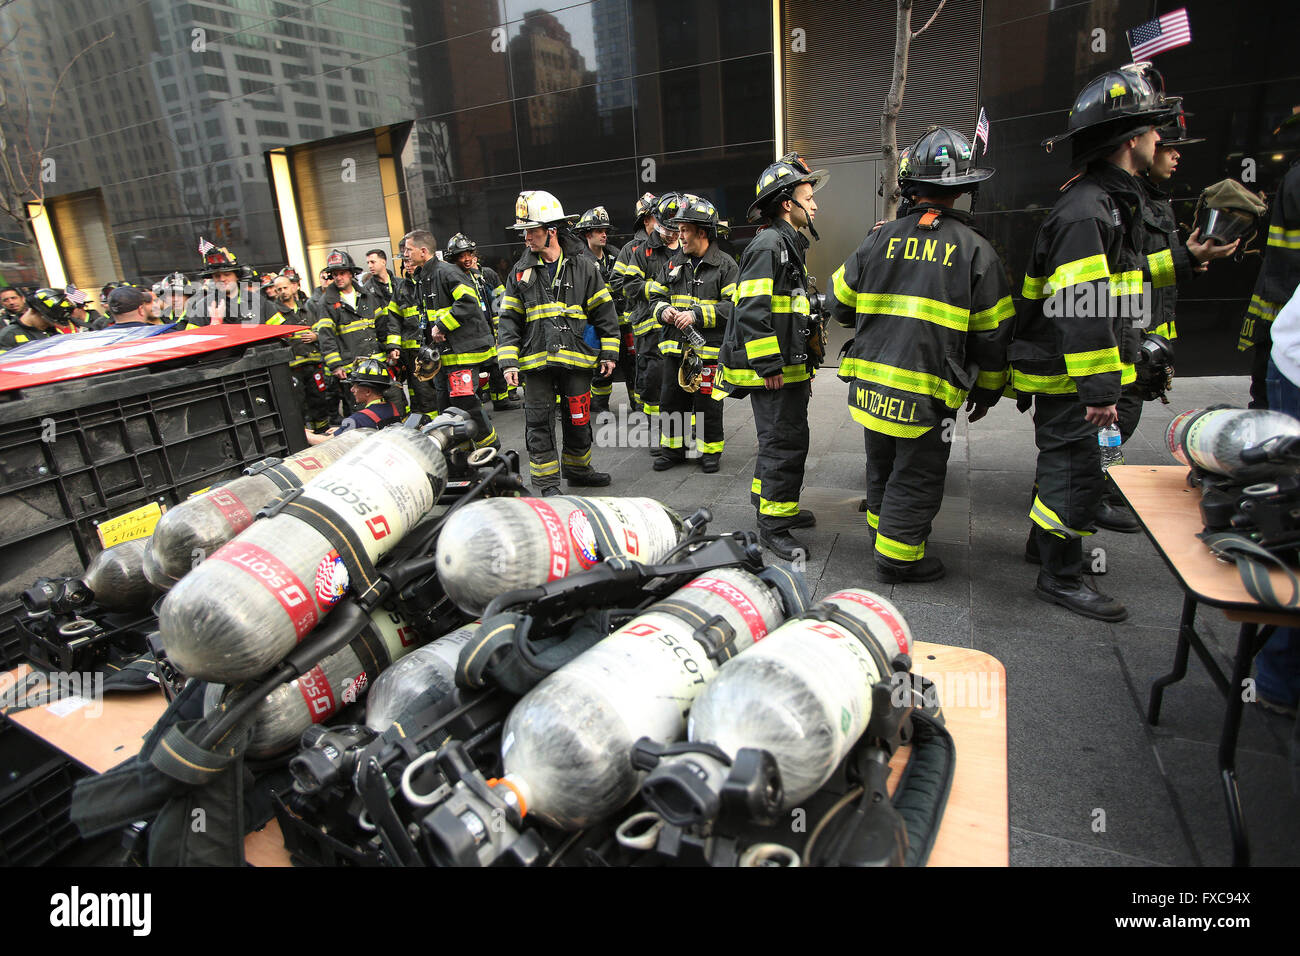 New York City, NY, USA. 13th Mar, 2016. FDNY firefighters prepare